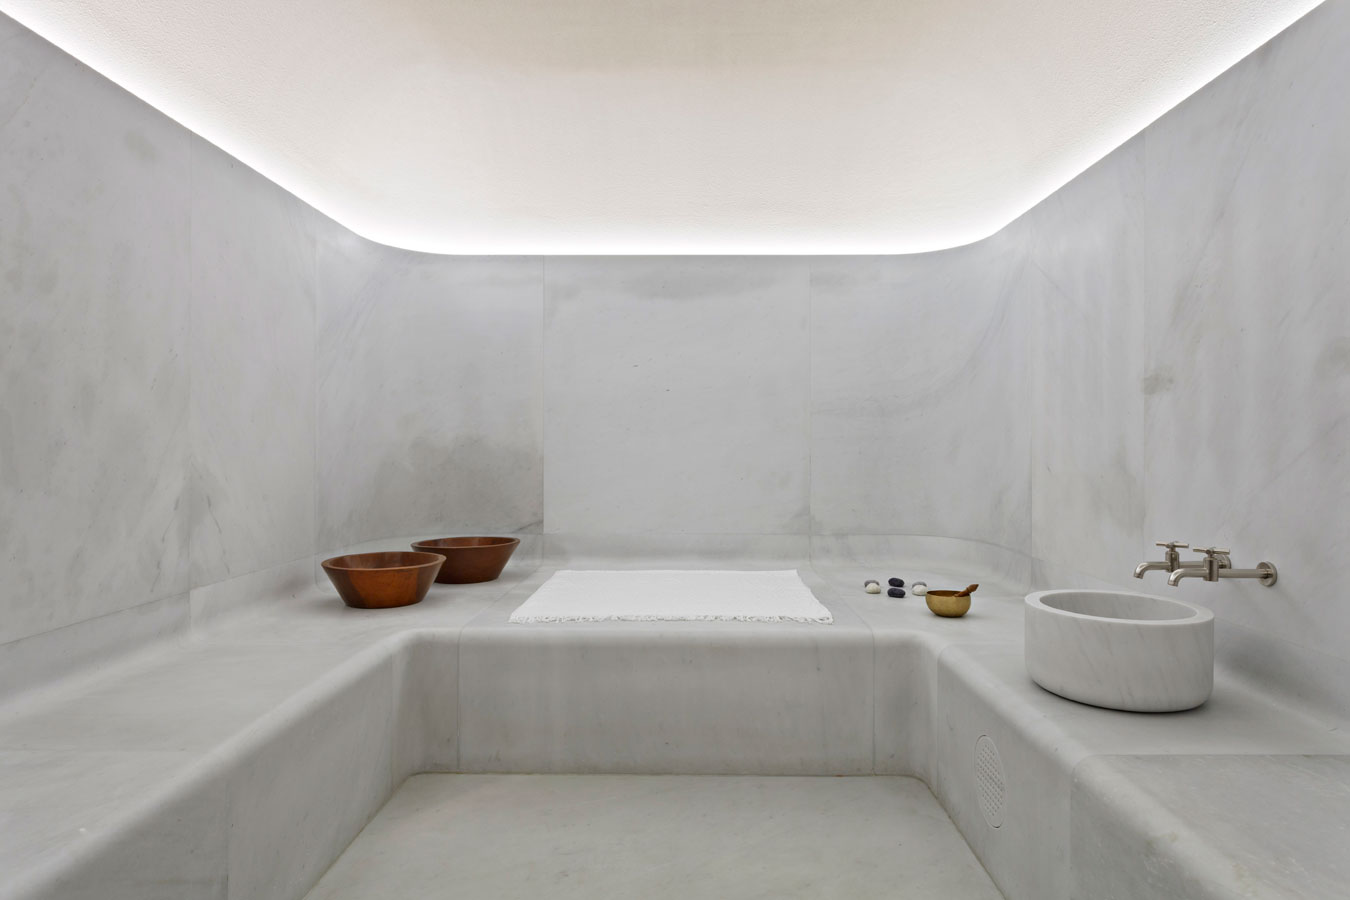 Carrara marble bathroom image the cafe royal hotel regent street - Junior Hotel Guests From The Age Of 5 To 16 Under The Guidance Of An Adult Are Welcome In The Swimming Pool Daily Between 10am To 11 30am And Between 2pm